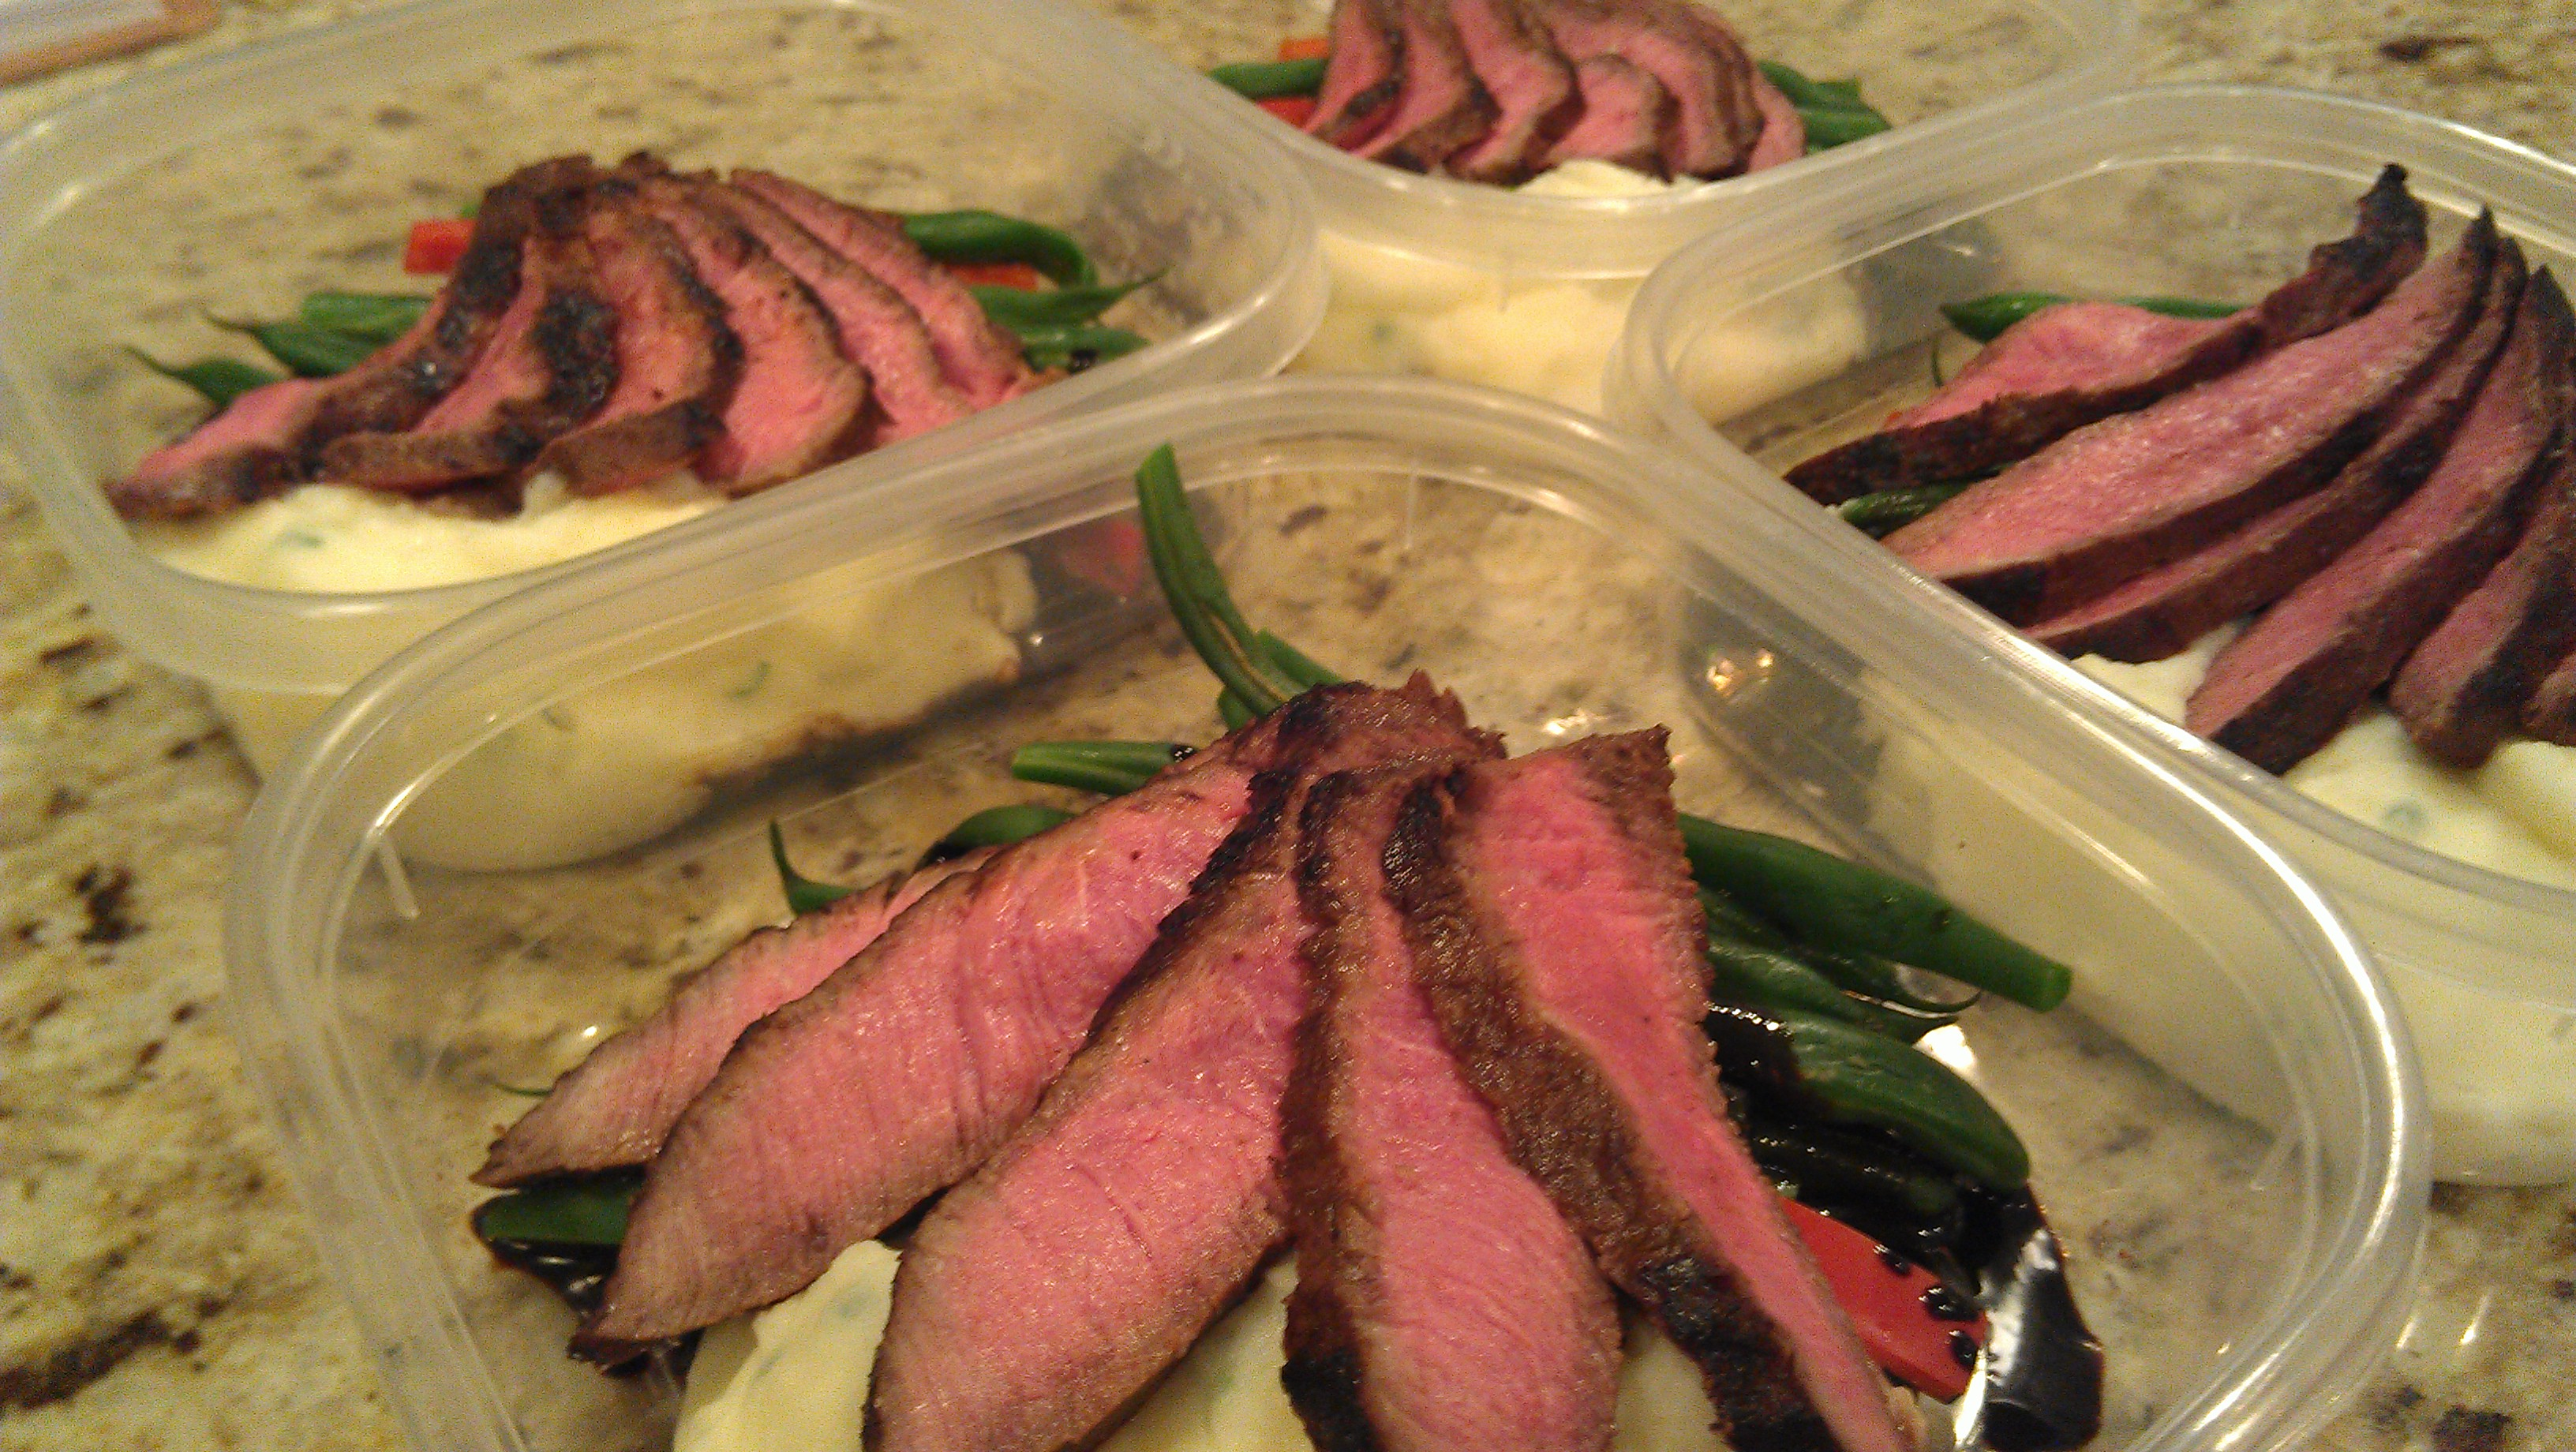 Marinated flat iron steak picture